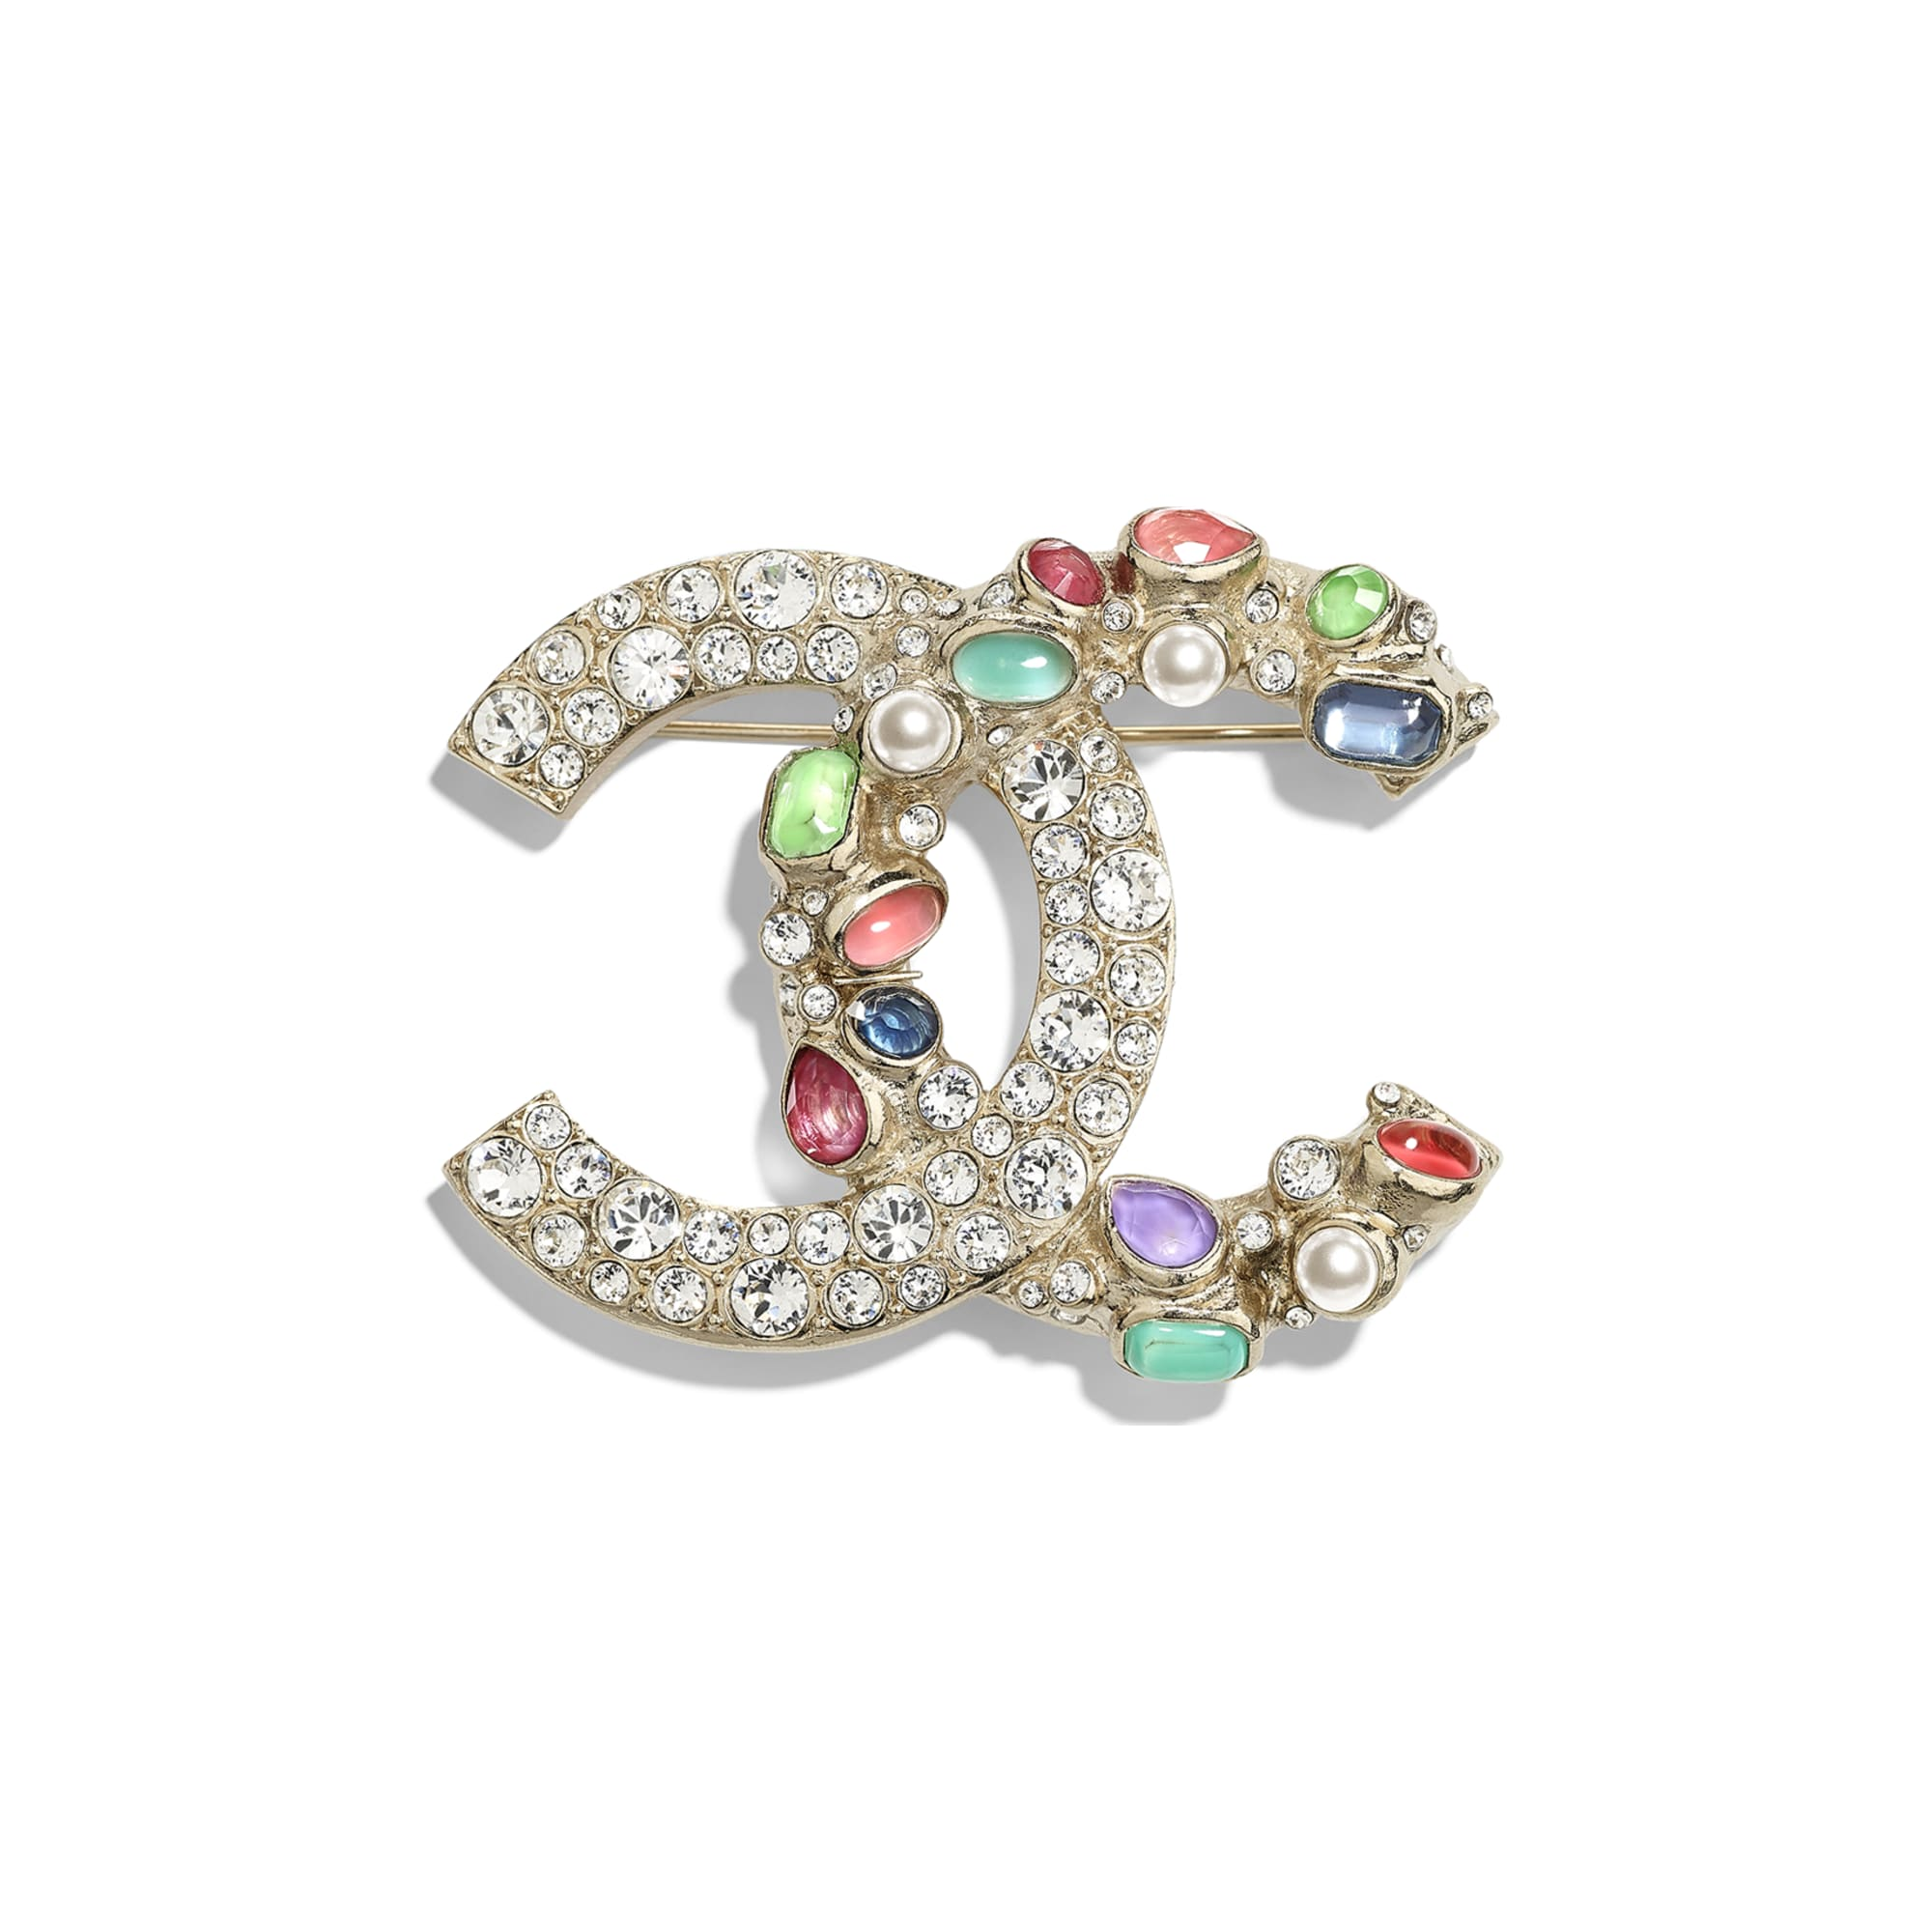 Brooch - Gold, Pearly White, Crystal, Green & Pink - Metal, Glass Pearls & Strass - CHANEL - Default view - see standard sized version